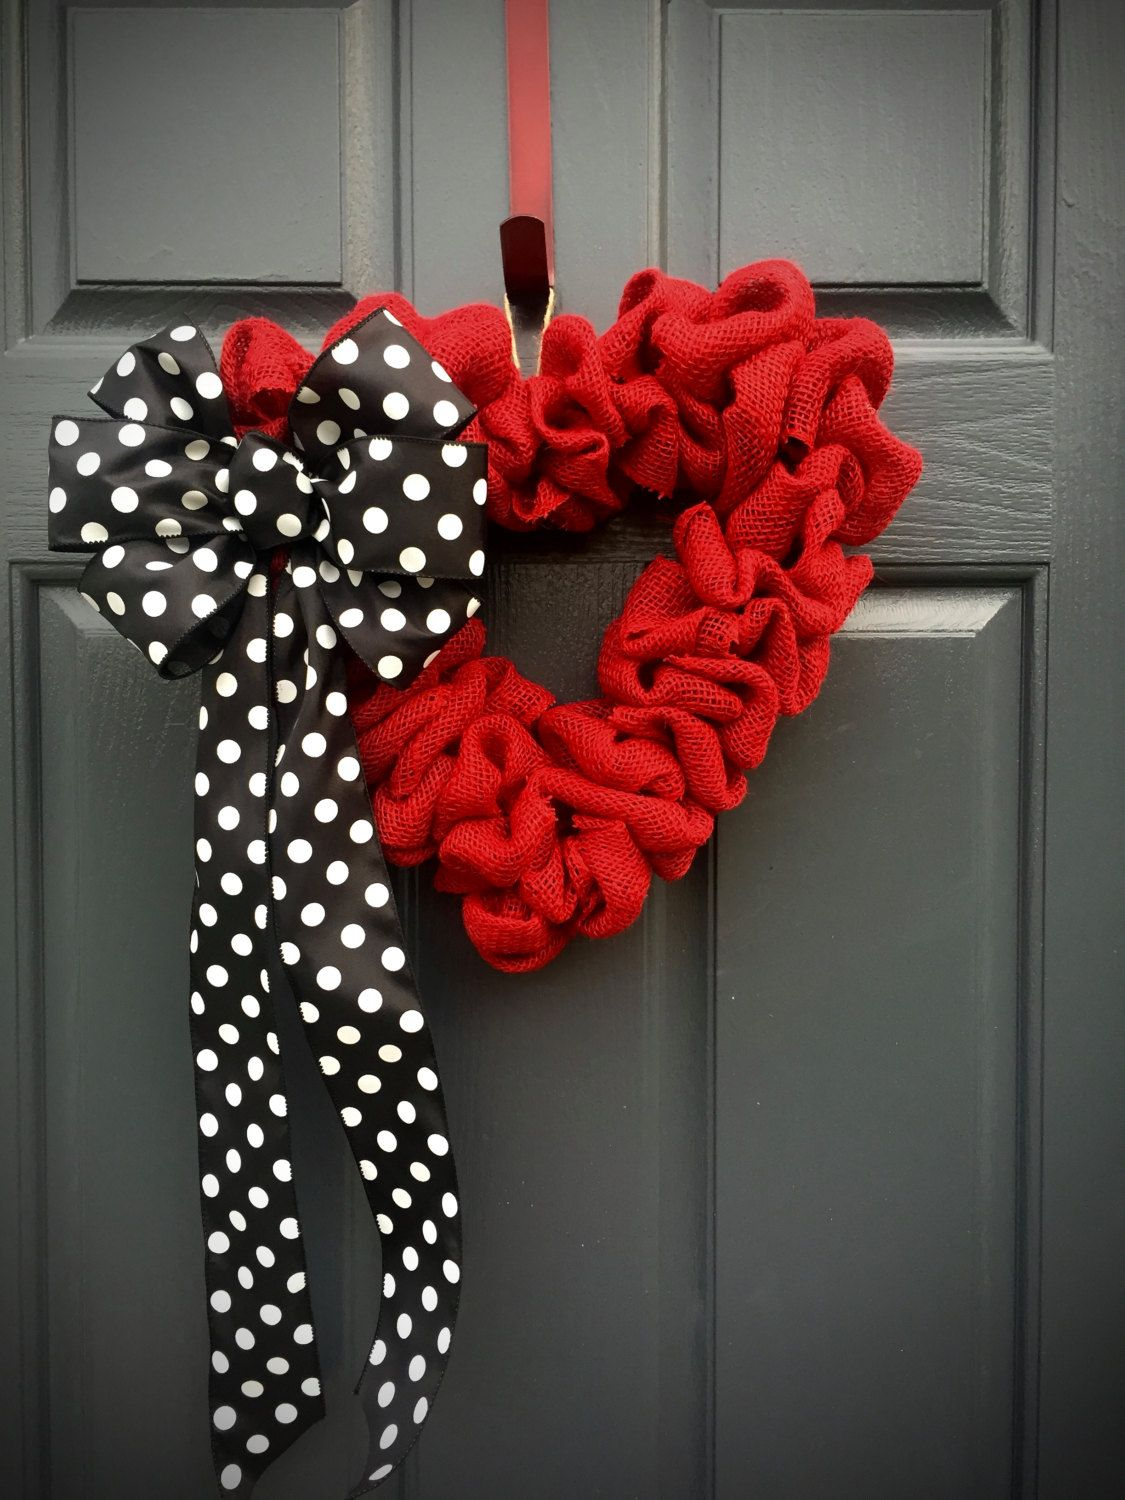 Decorating red door gifts photos : Red Heart Wreath, Valentines Gift, Polka Dots, Red Black White ...